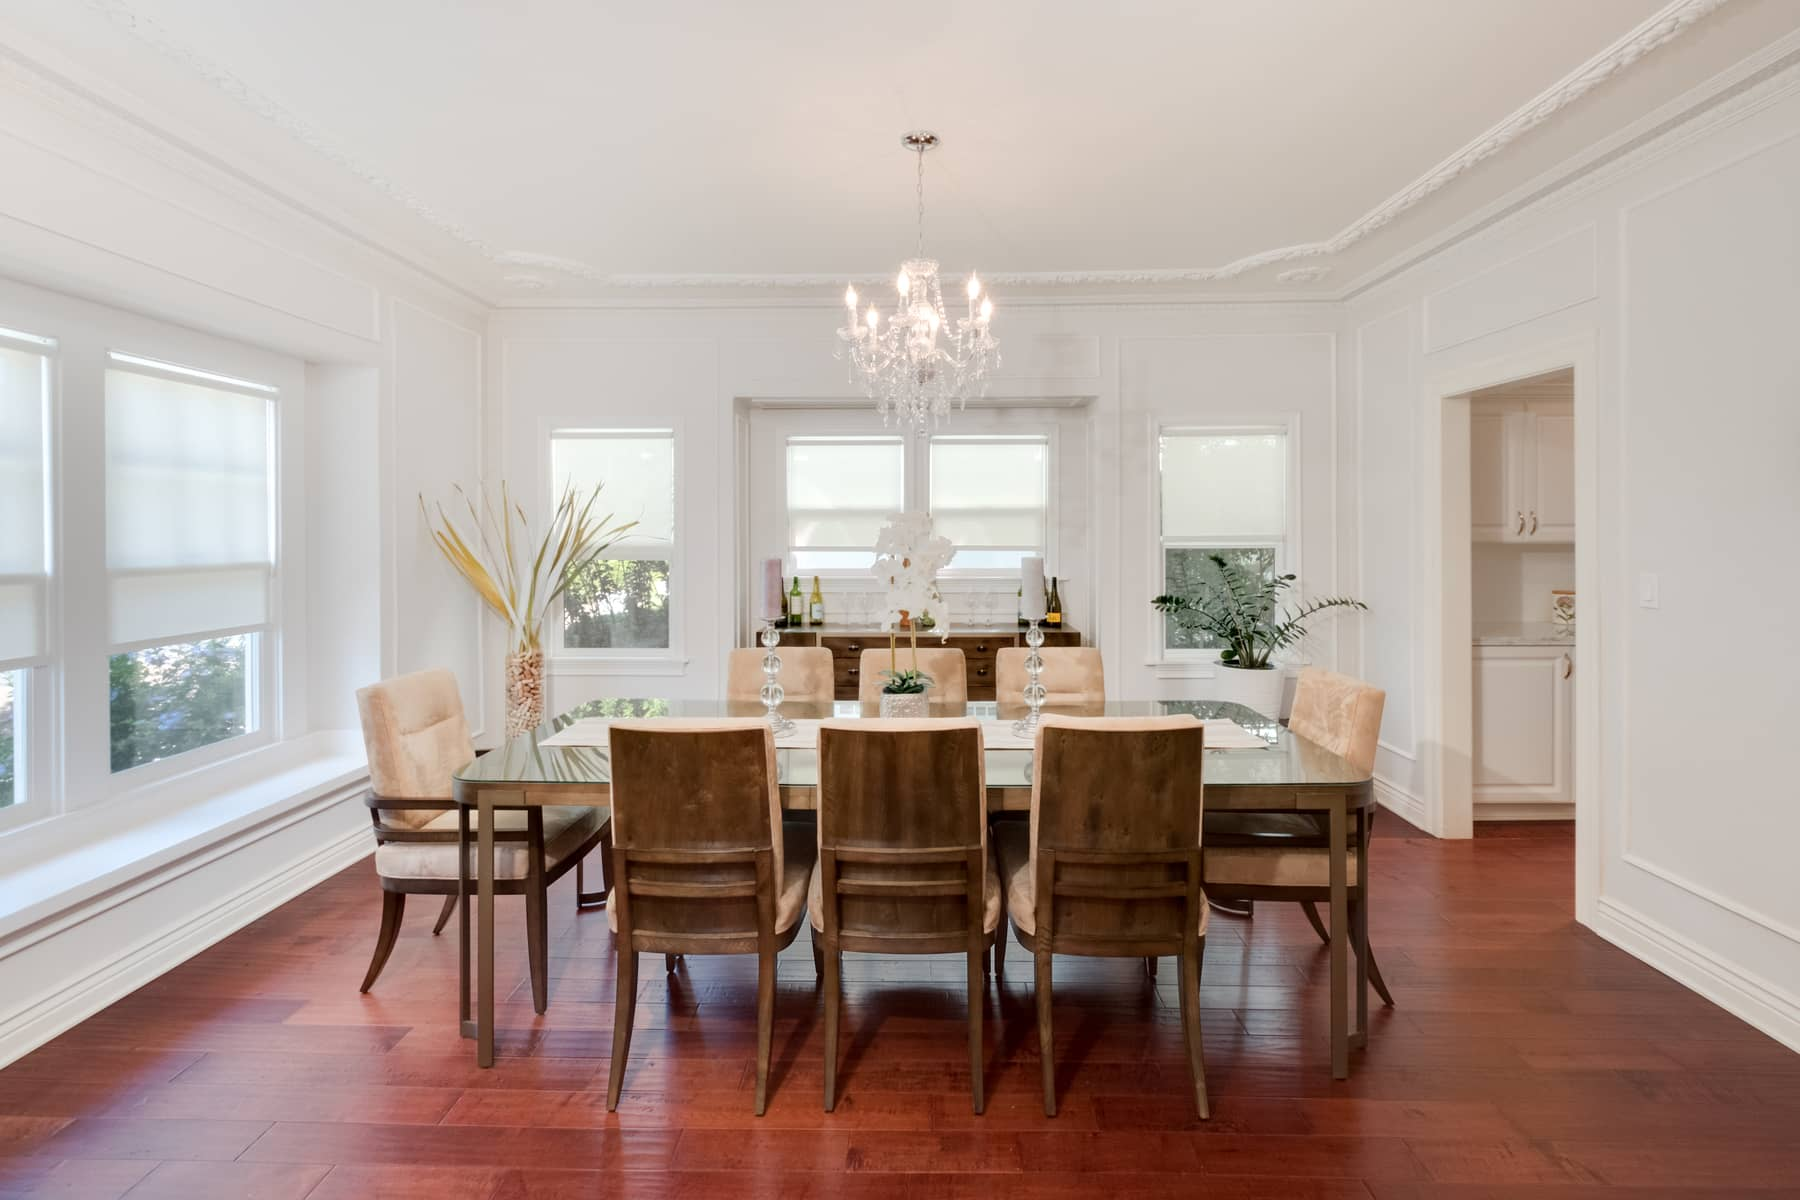 The dining room easily seats 8. And that's not counting the cozy built-in seating area along the front picture window!